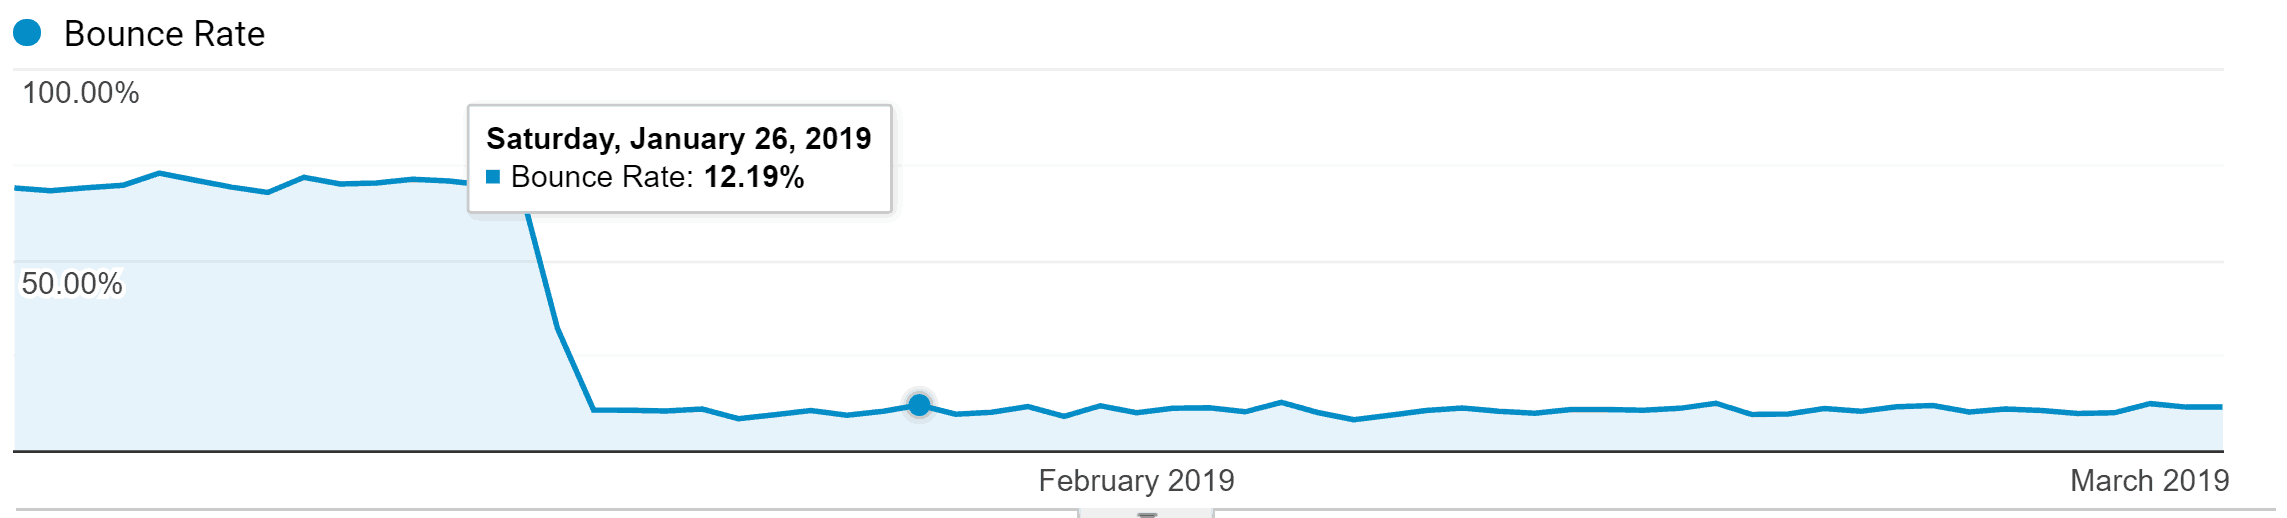 Bounce rate accuracy